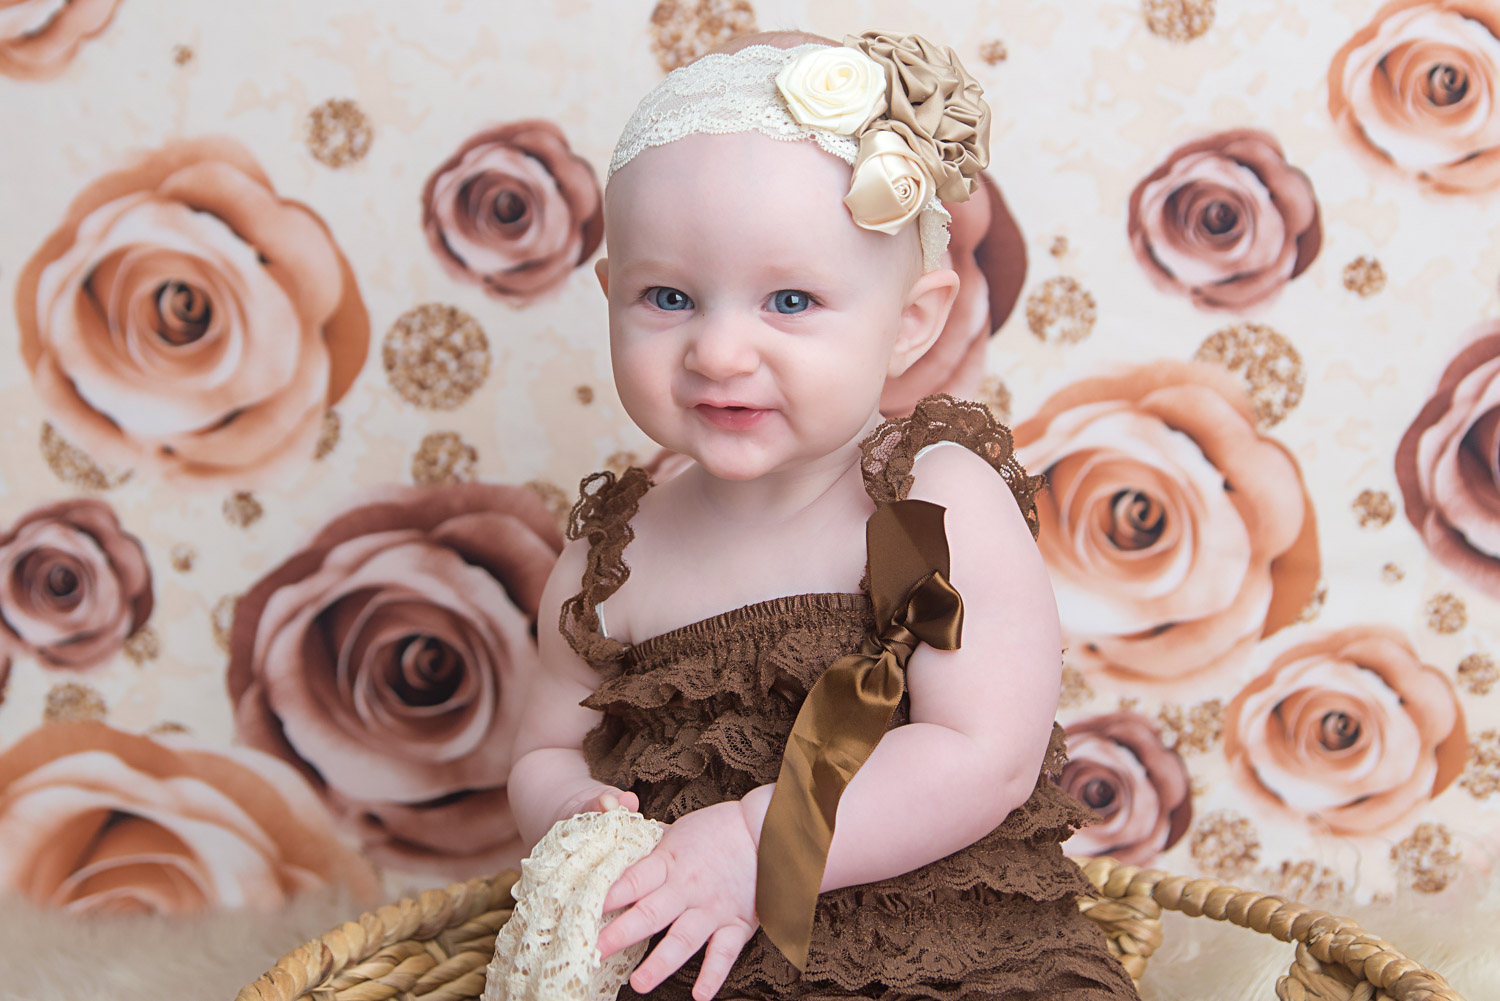 st-louis-baby-photographer-6-month-session-girl-in-lace-romper-on-rose-backdrop.jpg